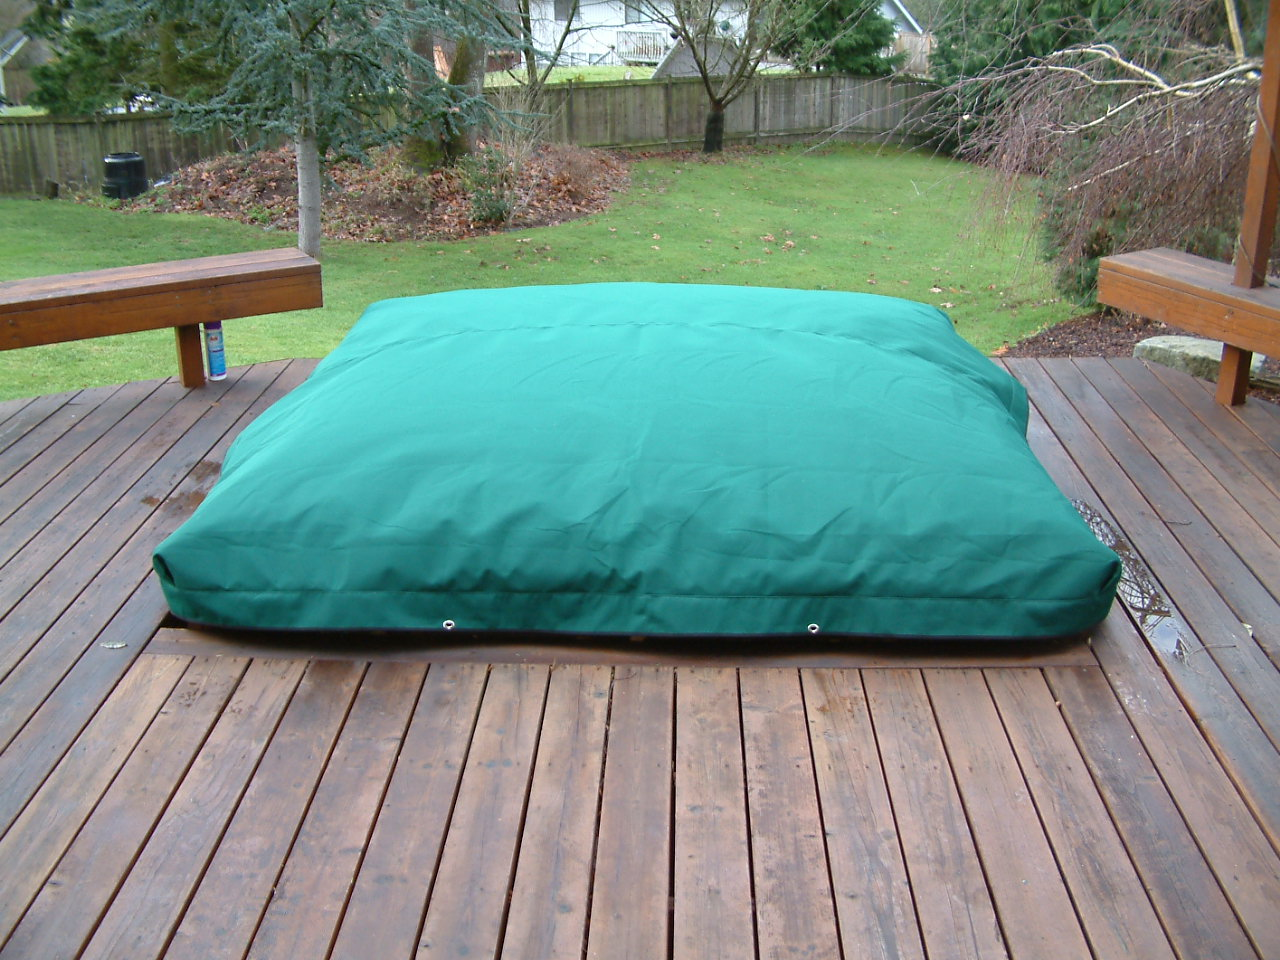 SpaCap Swim Spa Covers can be green